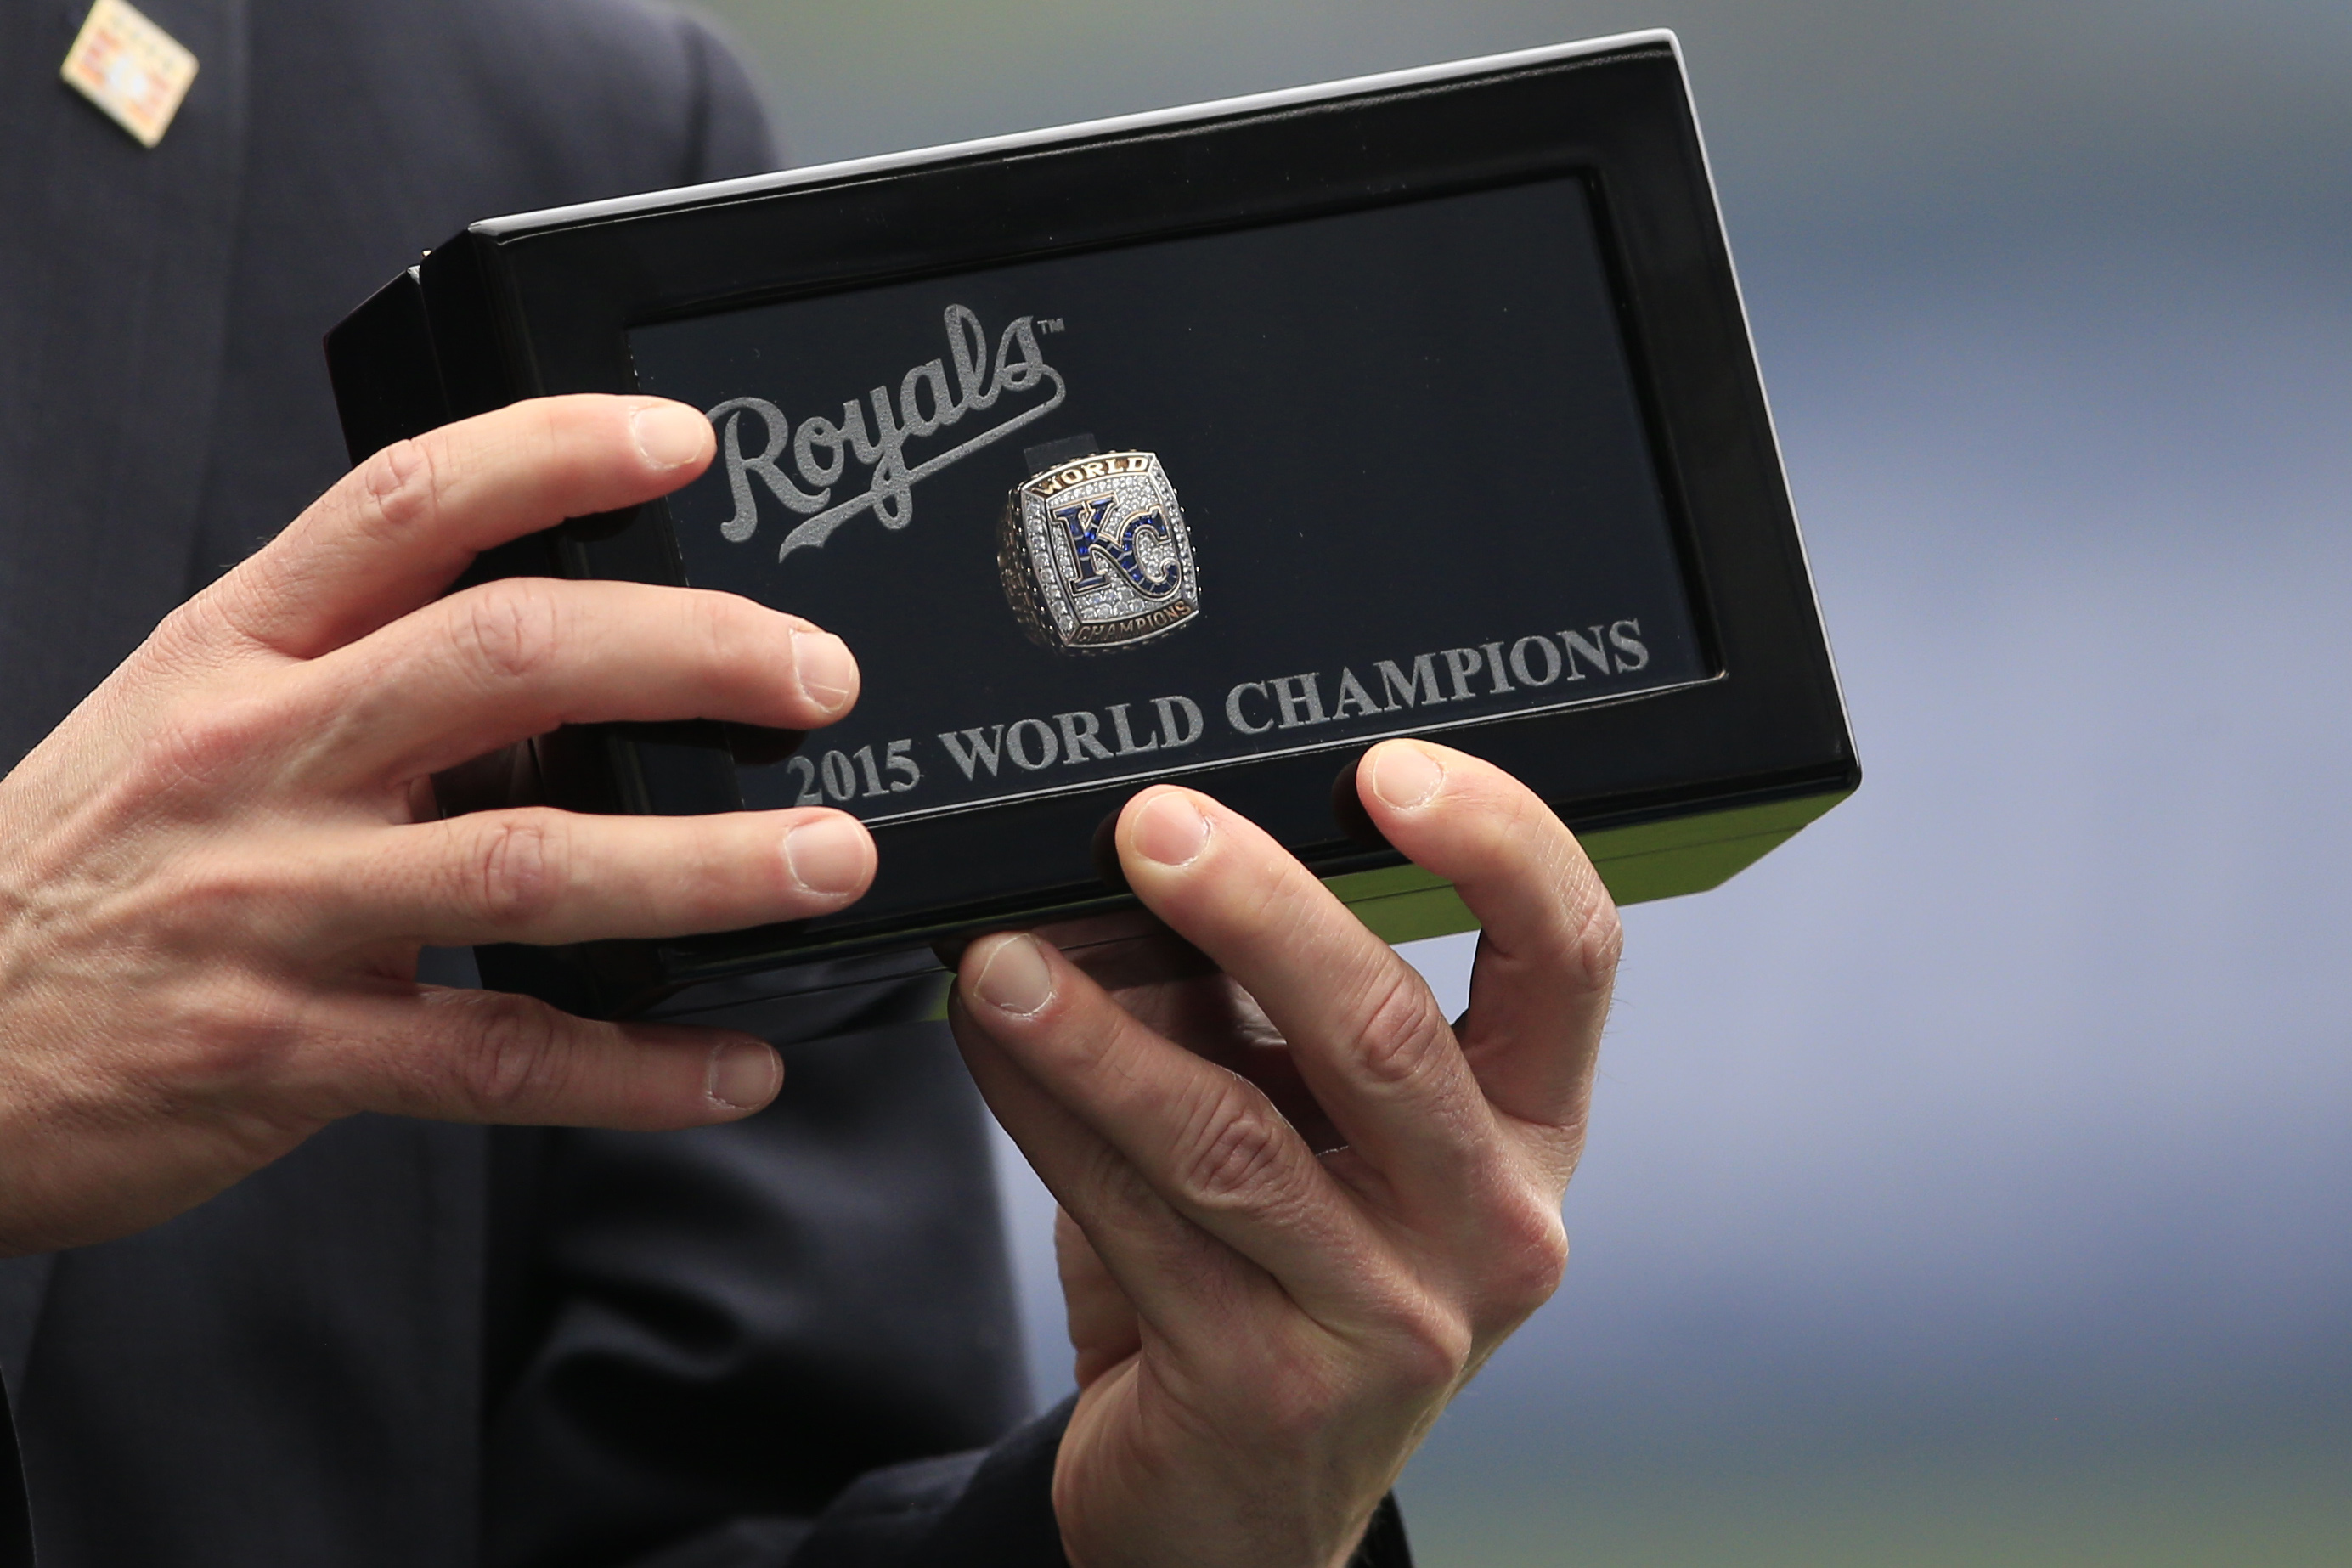 <div class='meta'><div class='origin-logo' data-origin='AP'></div><span class='caption-text' data-credit='AP Photo/Orlin Wagner'>Jeff Idelson, Hall of Fame president, holds a World Series ring before a baseball game between the Kansas City Royals and the New York Mets at Kauffman Stadium in Kansas City, Mo.</span></div>